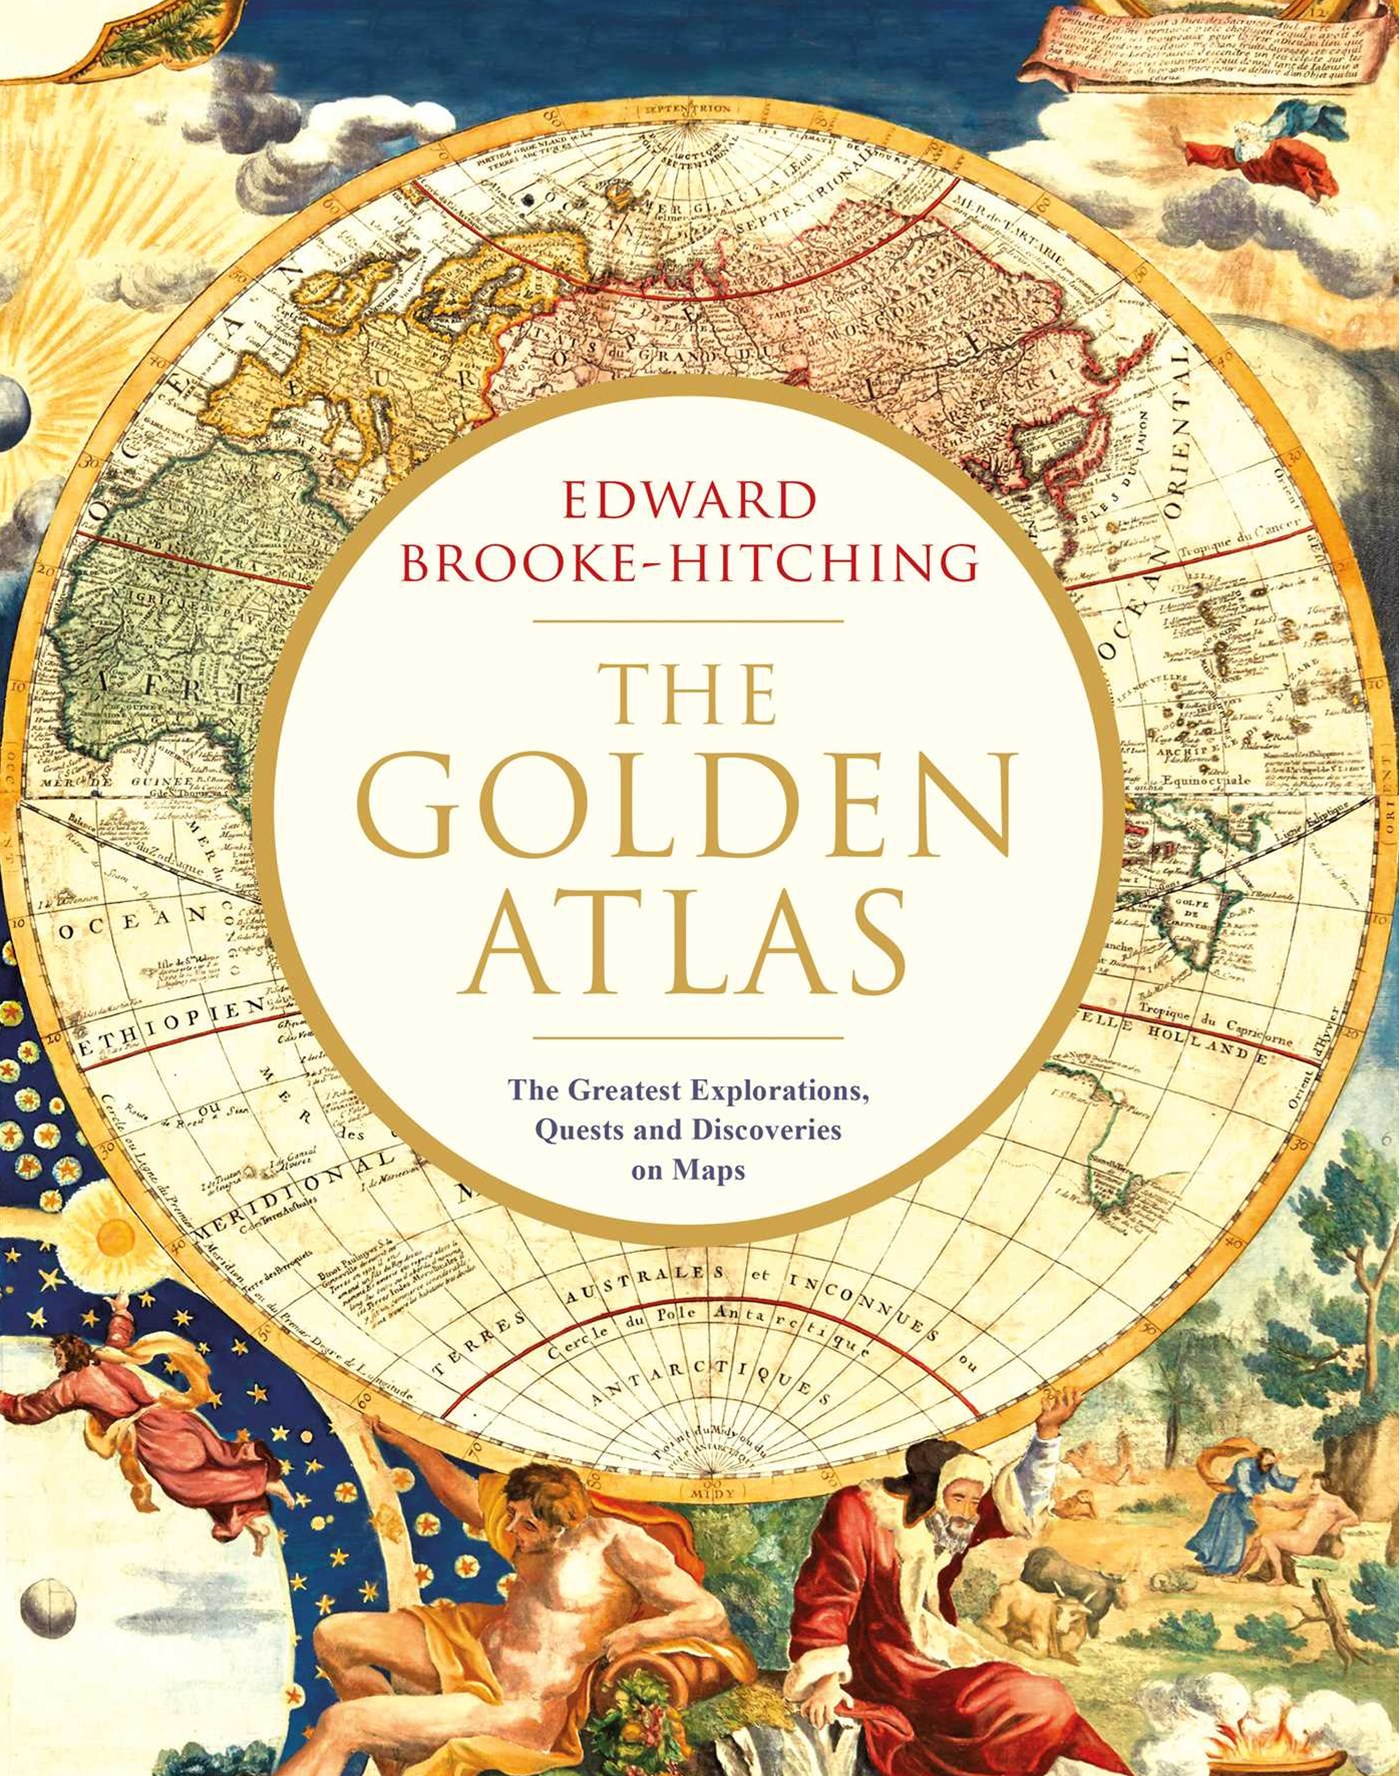 Golden Atlas: The Greatest Explorations, Quests and Discoveries on Maps